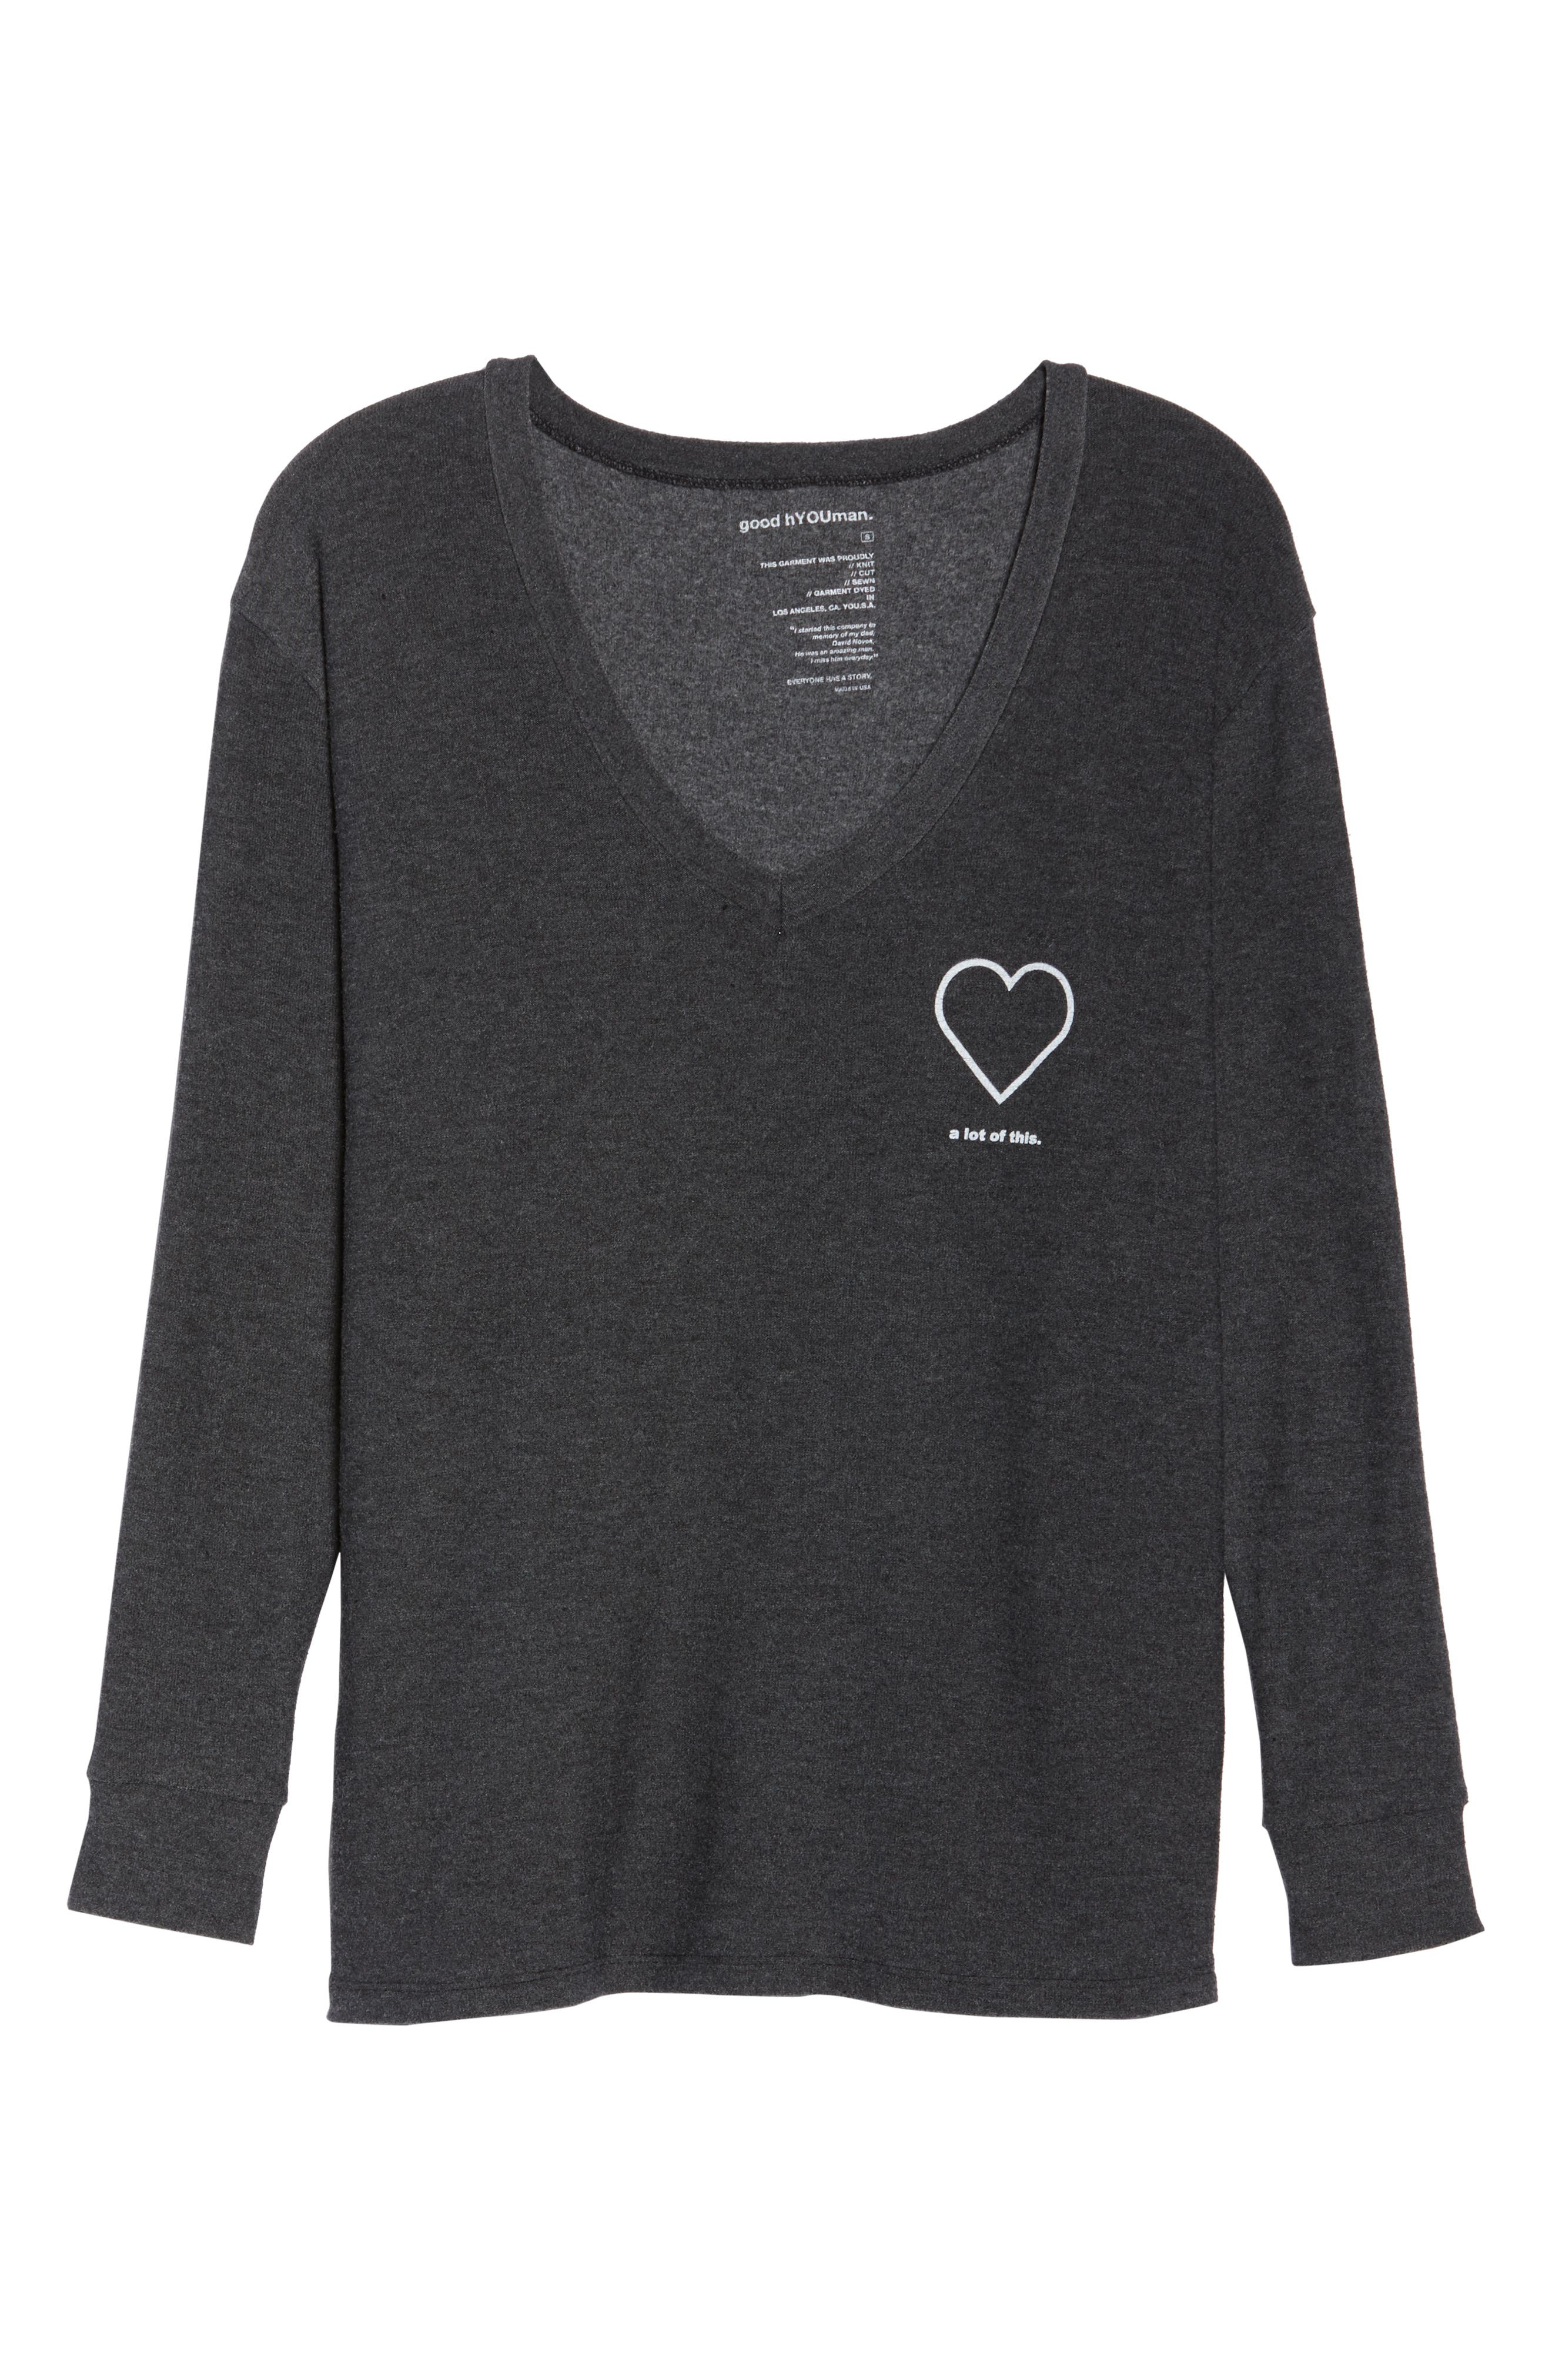 The Robin - Heart A Lot of This Sweatshirt,                             Alternate thumbnail 7, color,                             004